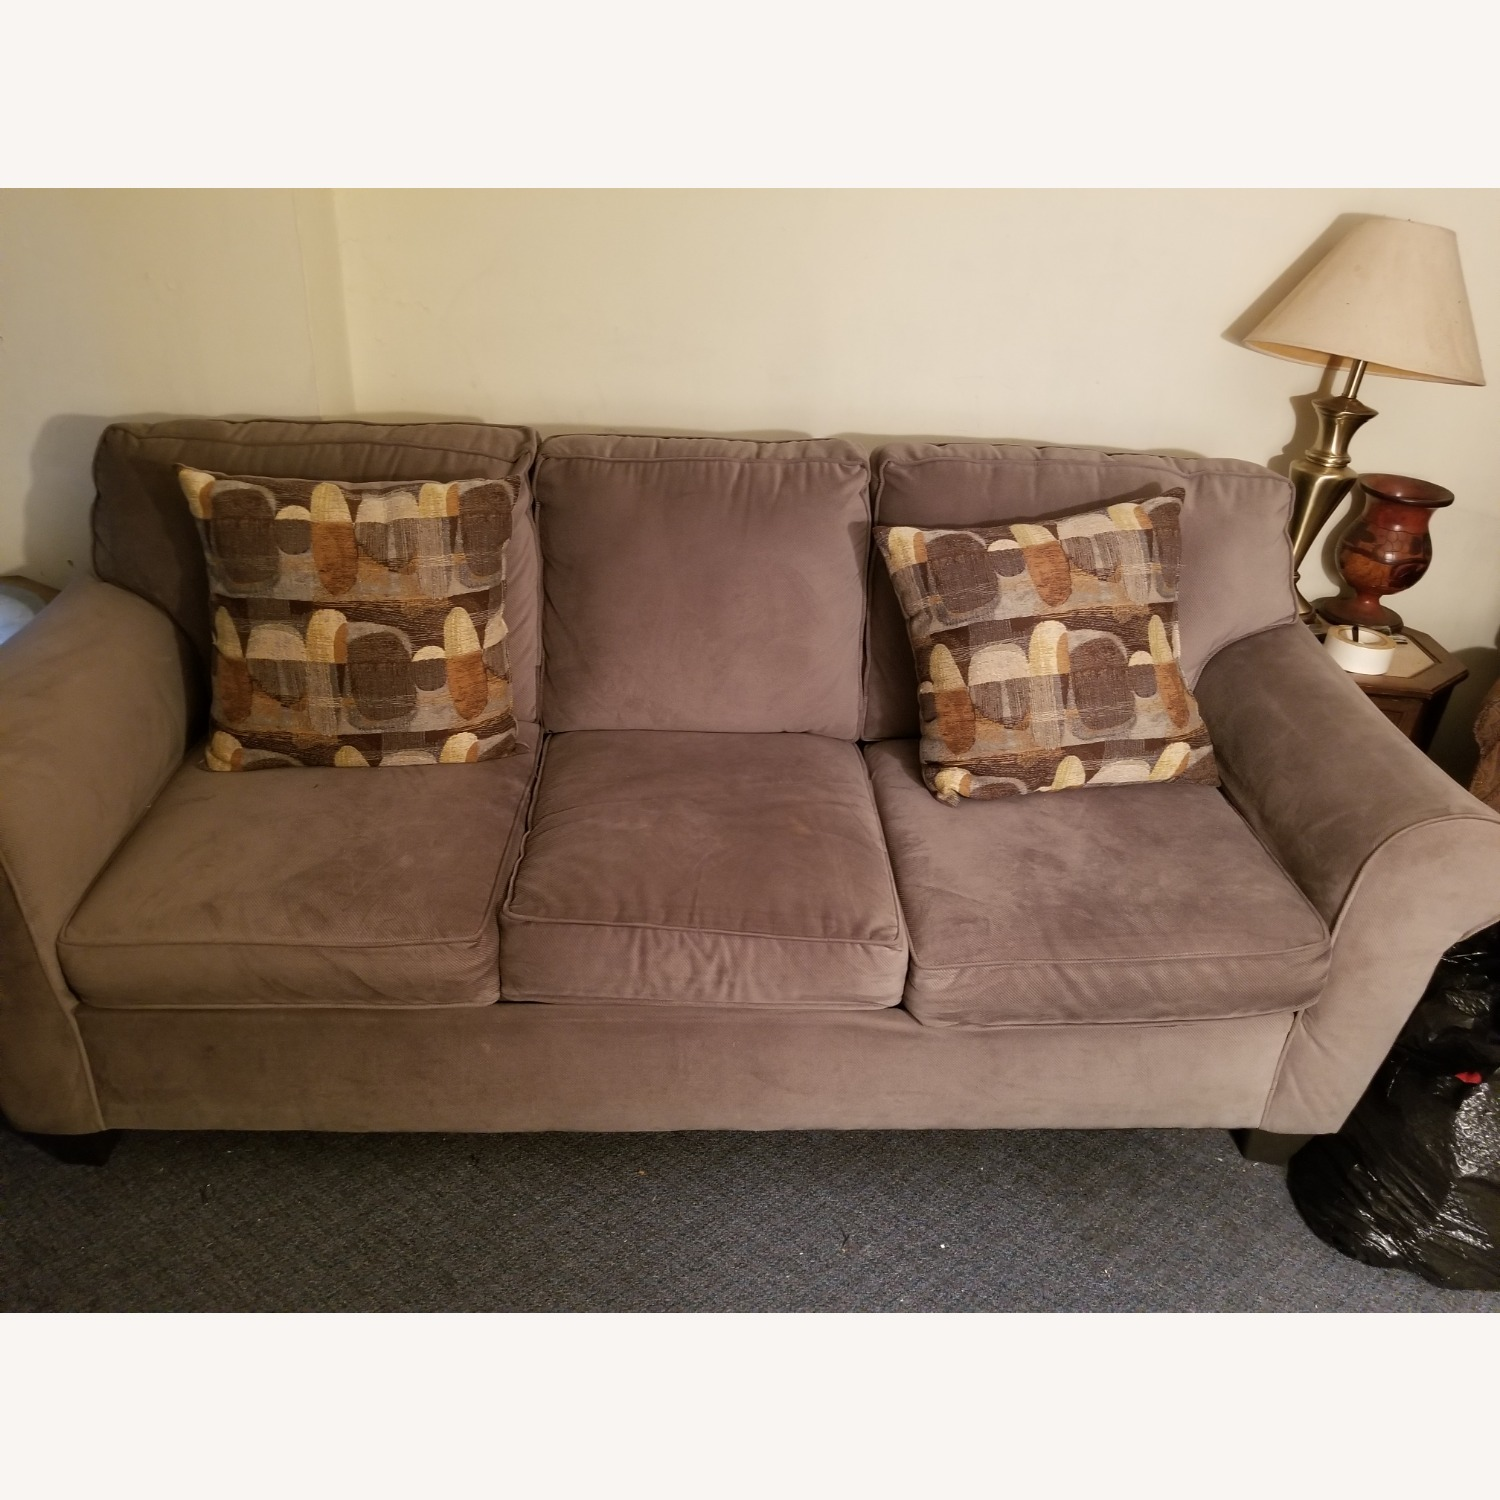 Raymour & Flanigan Green Couch with Reversible Pillows - image-2